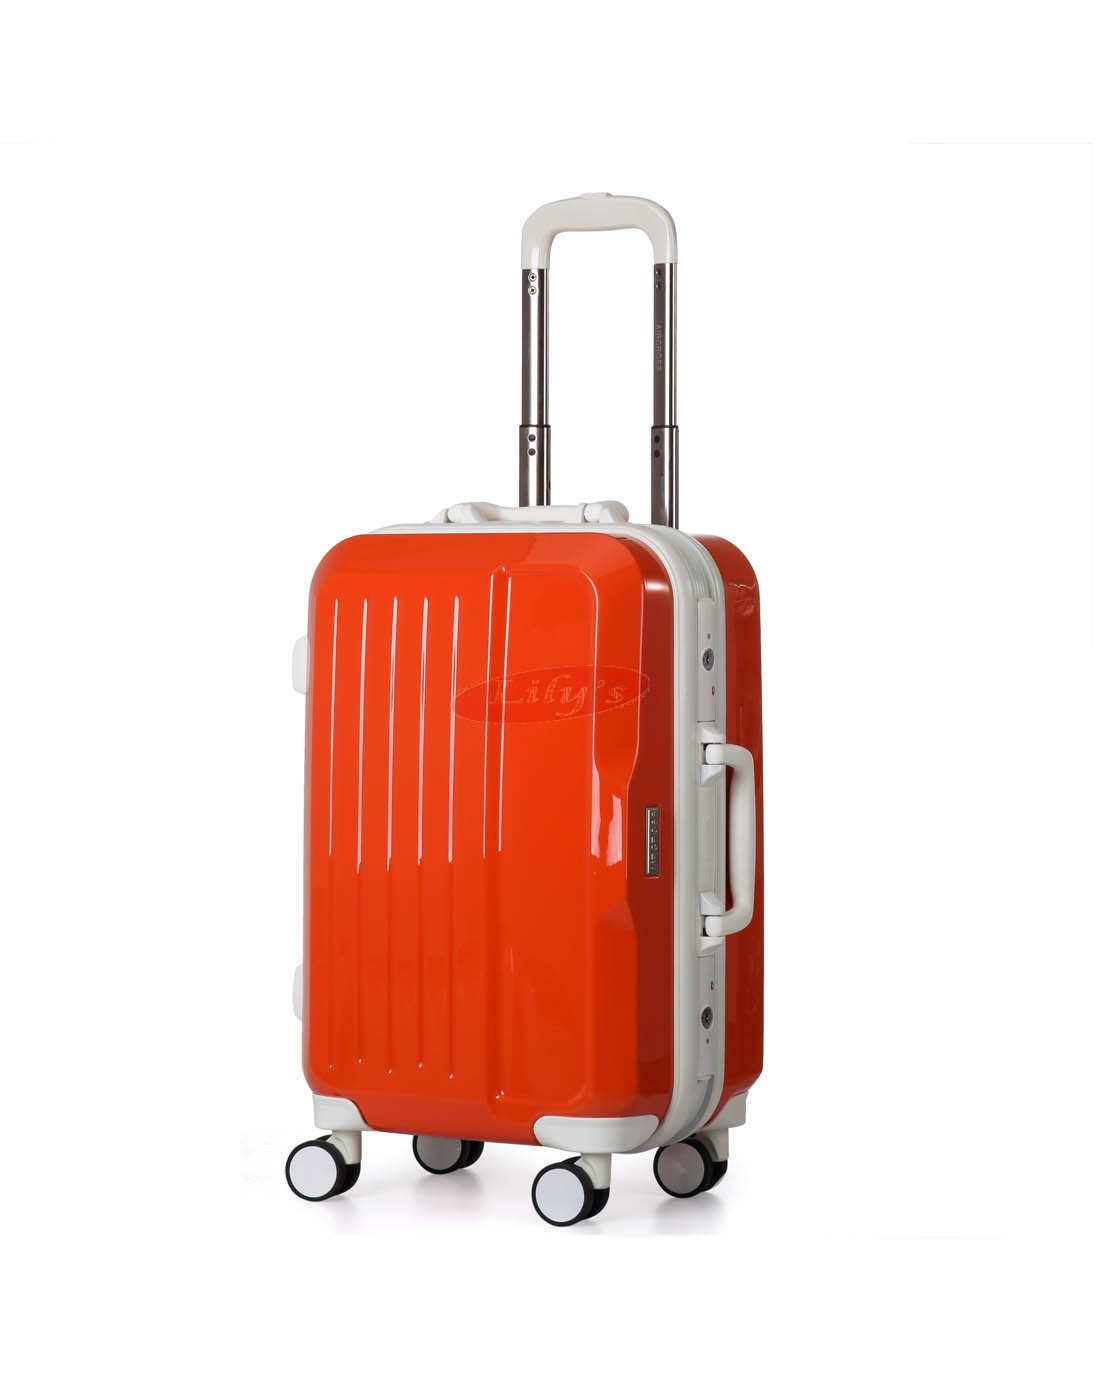 "AIRCROSS 2PC Set Luggage A56 Orange Hard Case Trolley Luggage -20""& 24"""